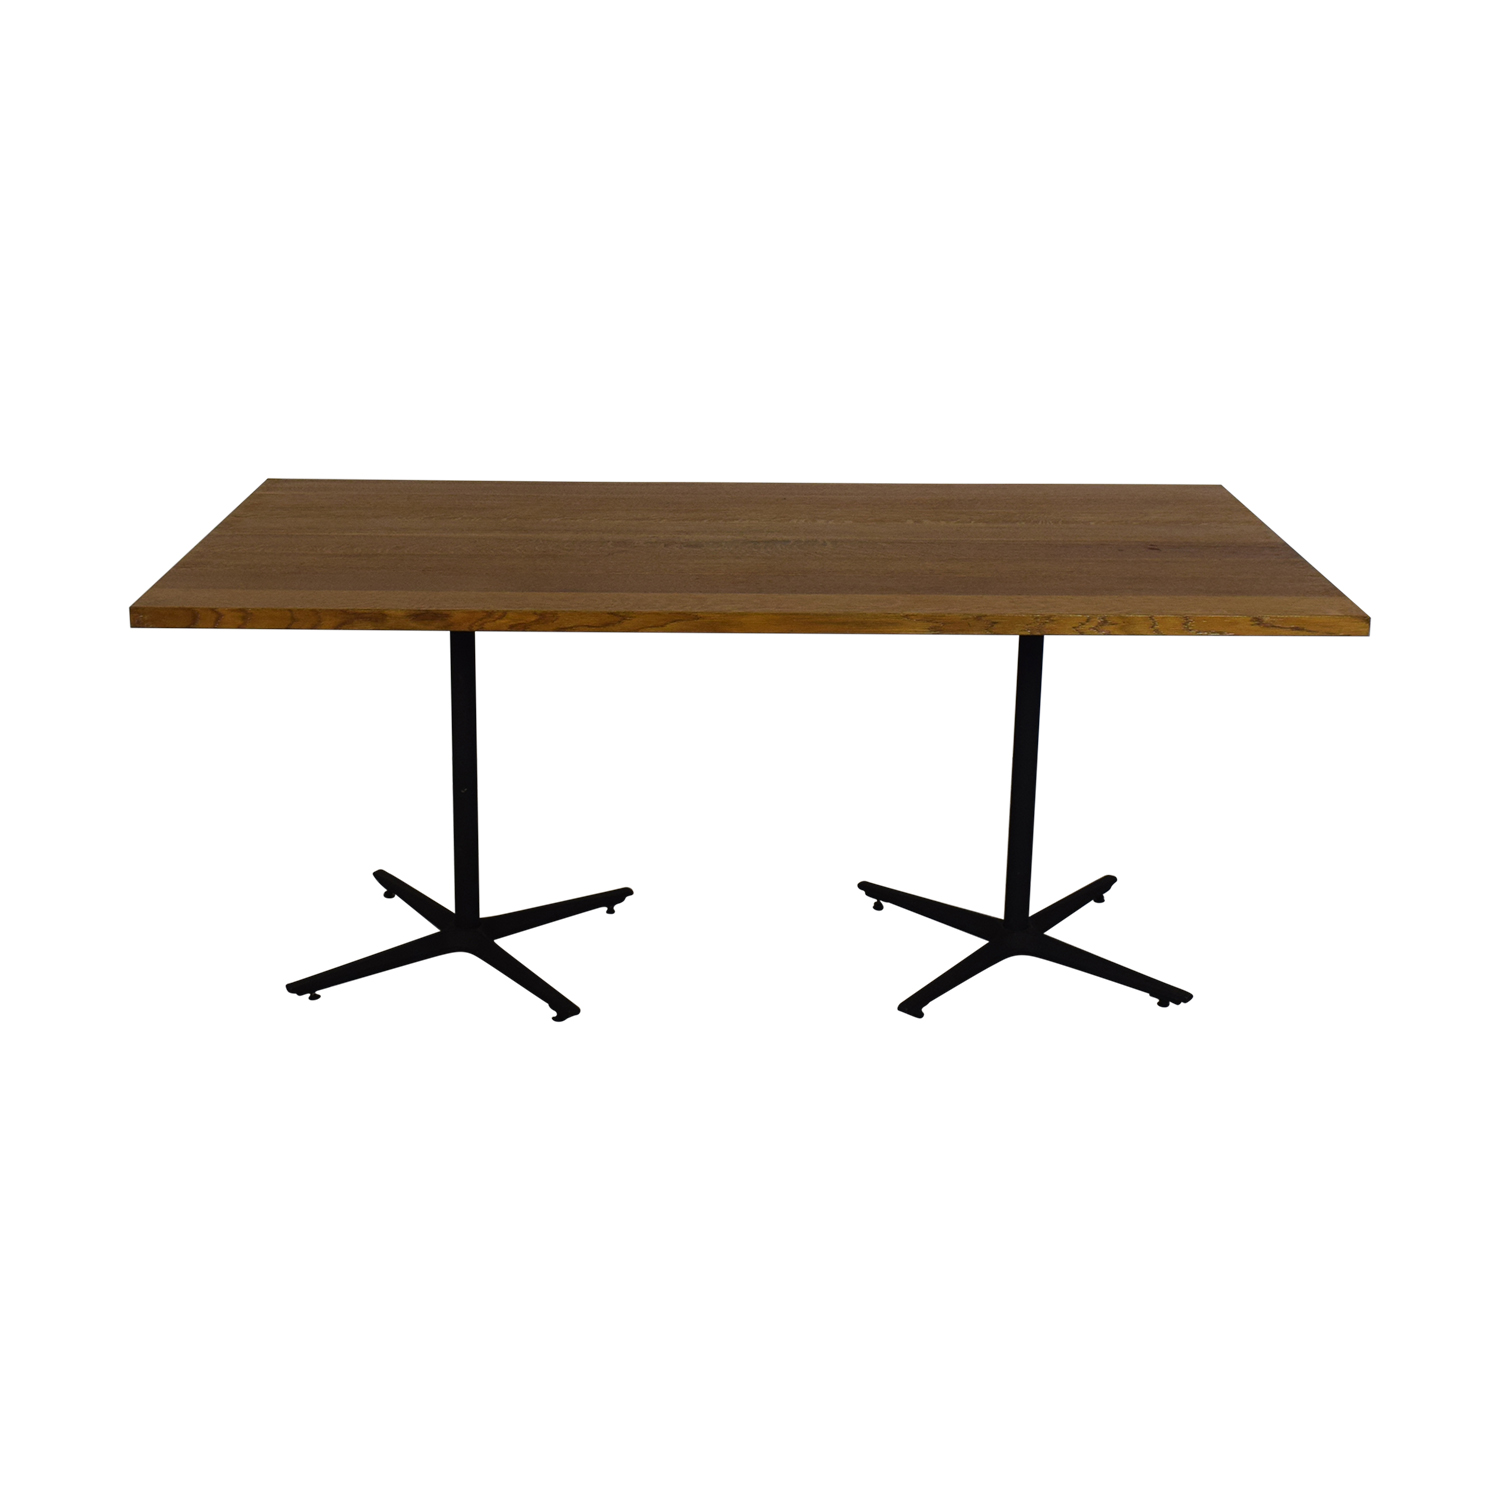 Counter Height Table dimensions